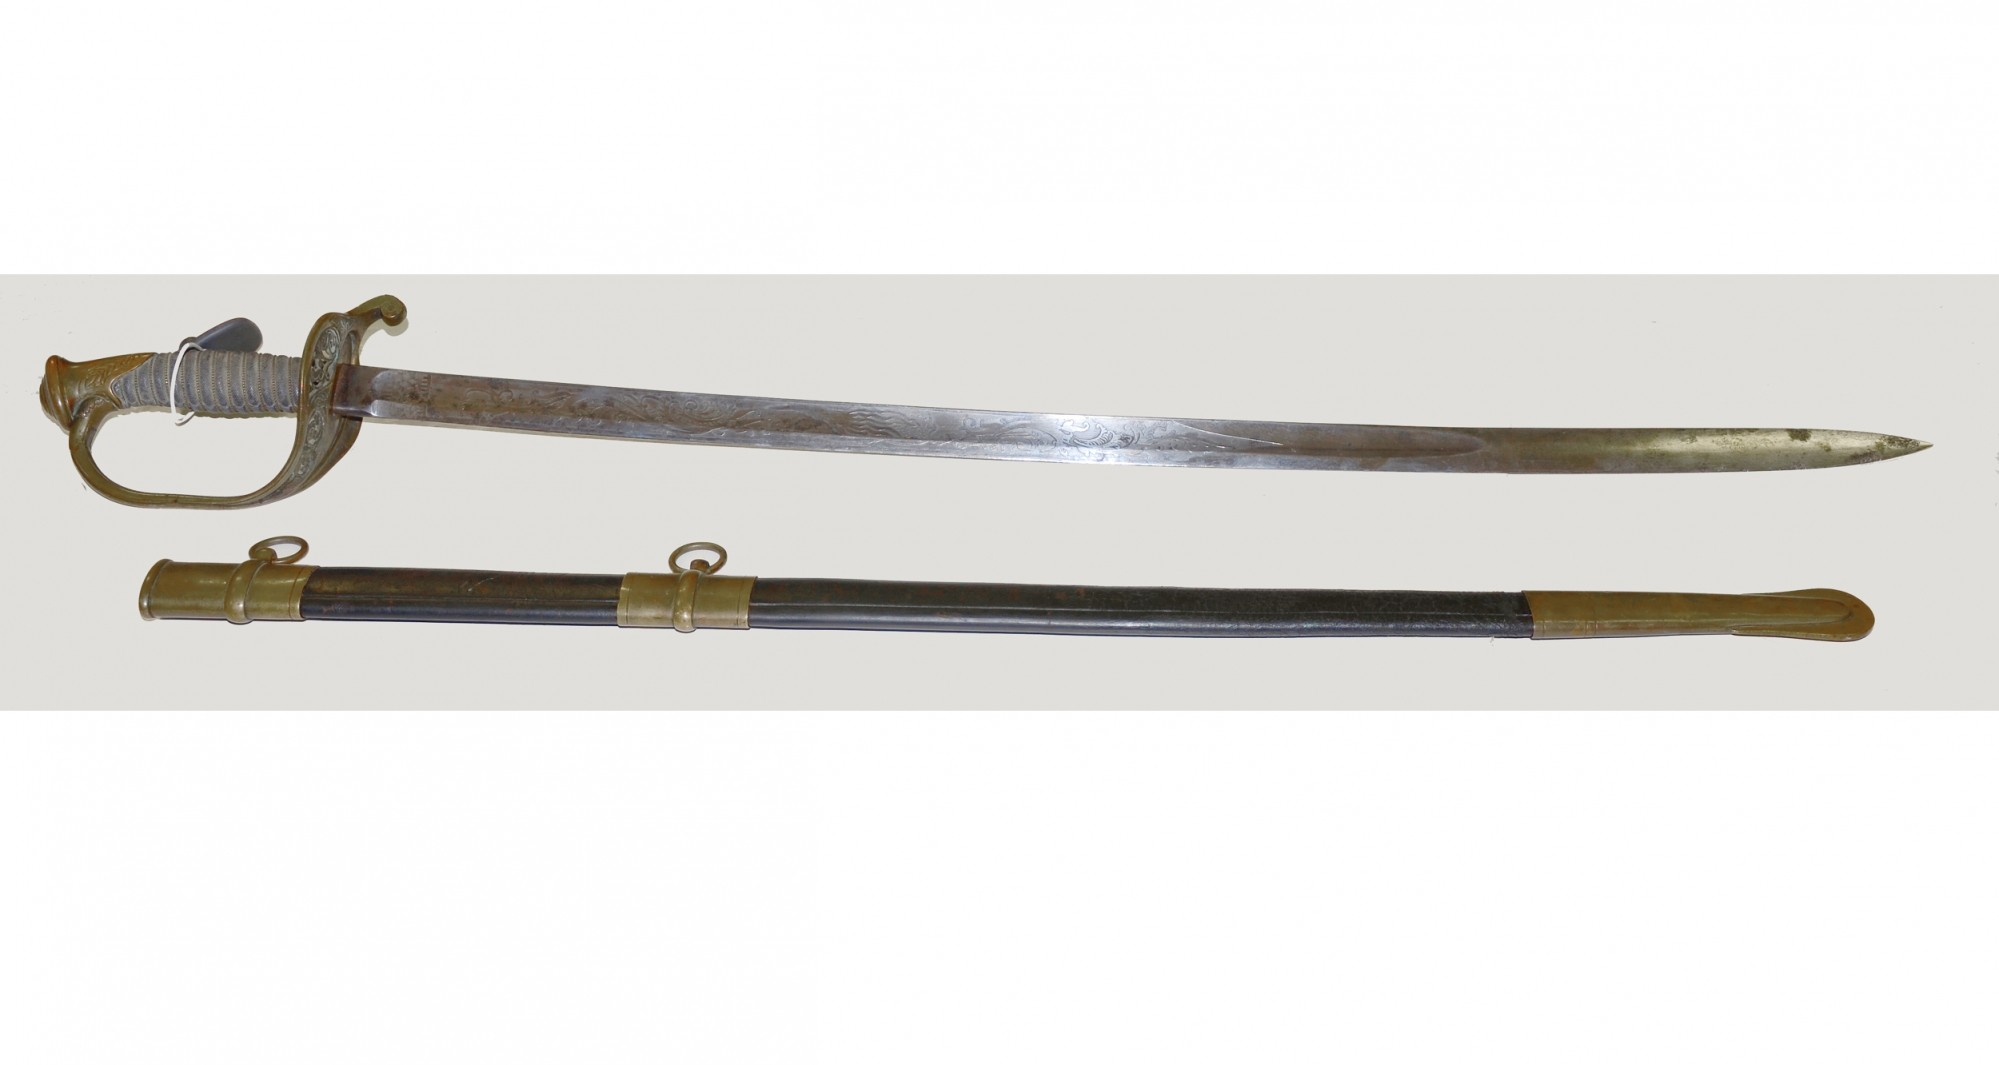 Classic Model 1850 Imported Civil War Foot Officer S Sword